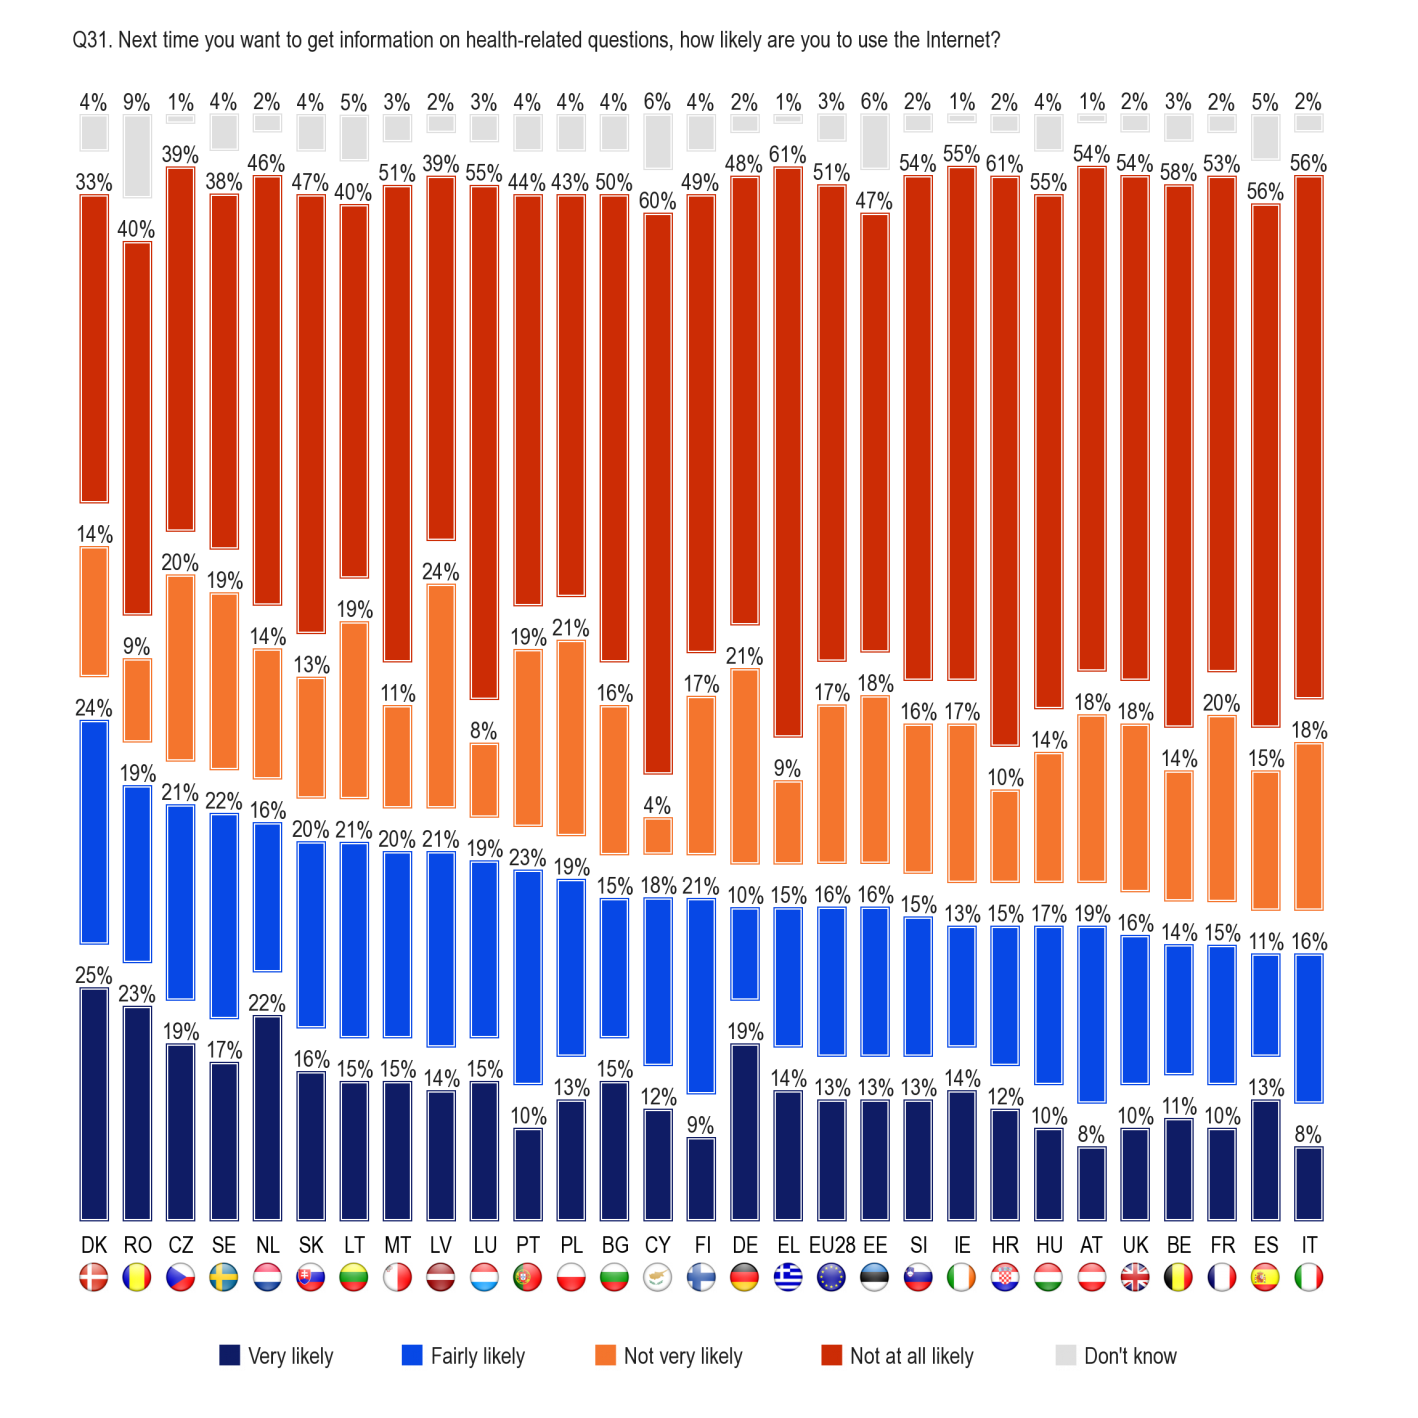 FLASH EUROBAROMETER Base: Respondents who did not use the Internet to search for health-related information within the last 12 months (N=10884) The socio-demographic data show that: Among respondents